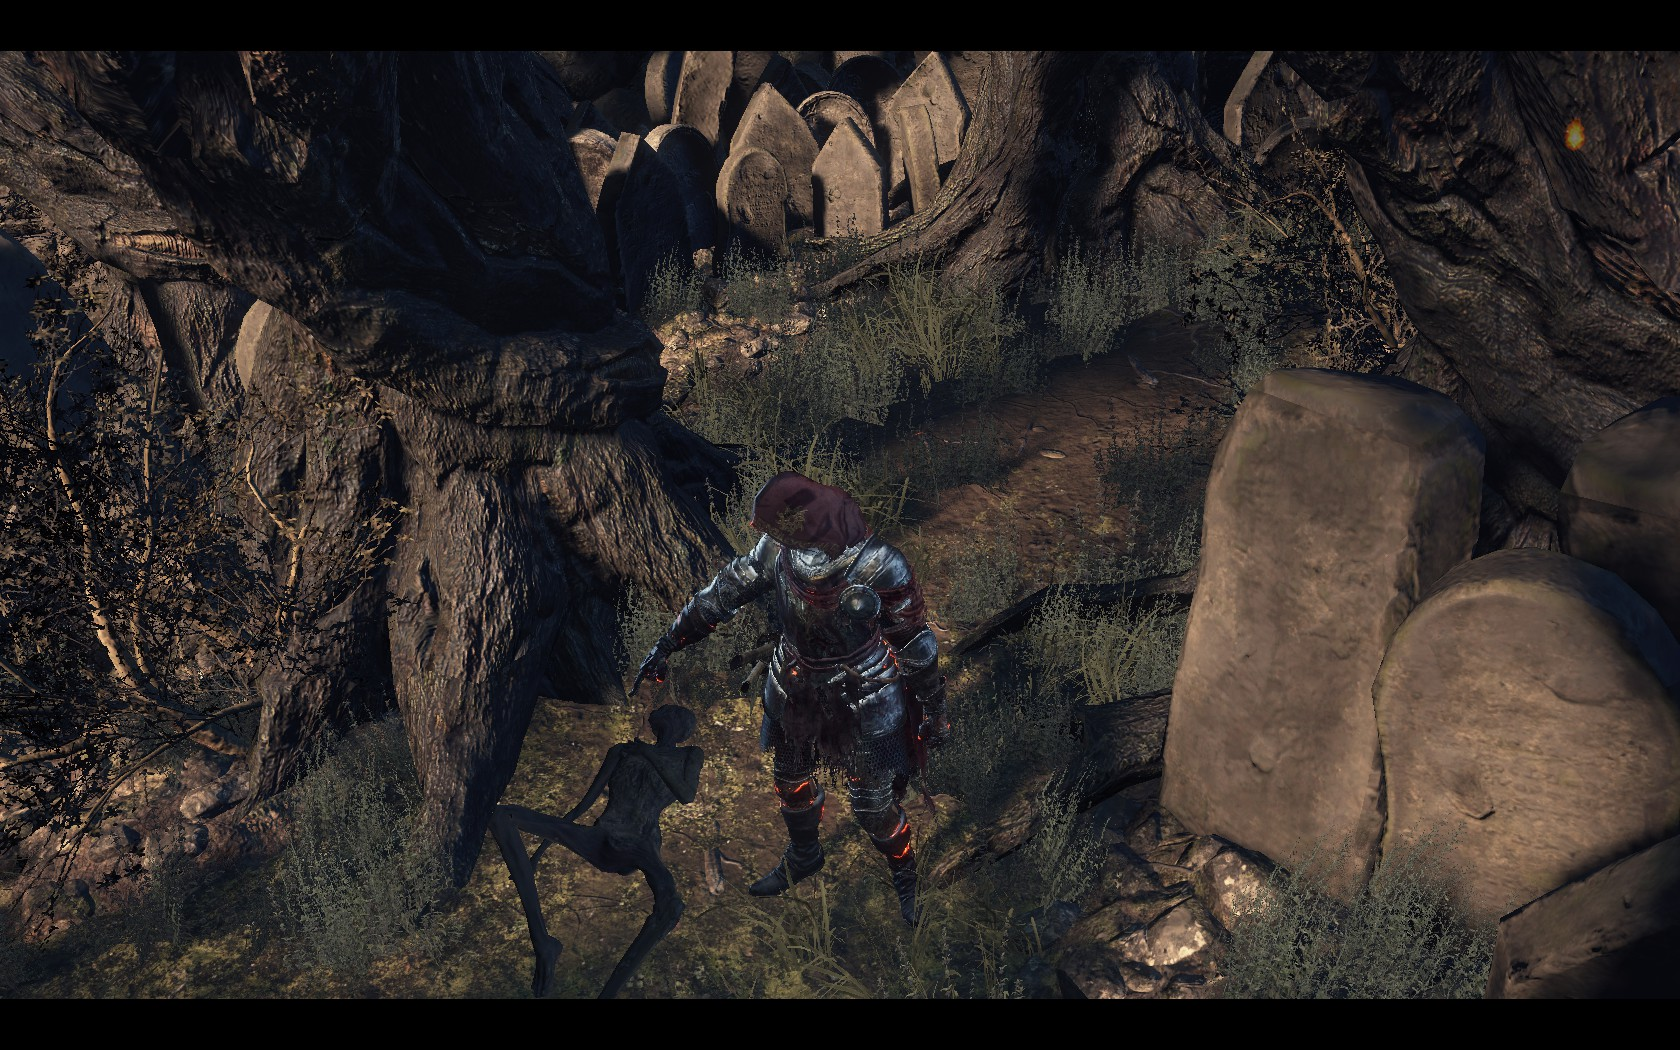 Steam Community Guide Locations Of All The Ashes And How To Get Them From there, he moves to firelink shrine. locations of all the ashes